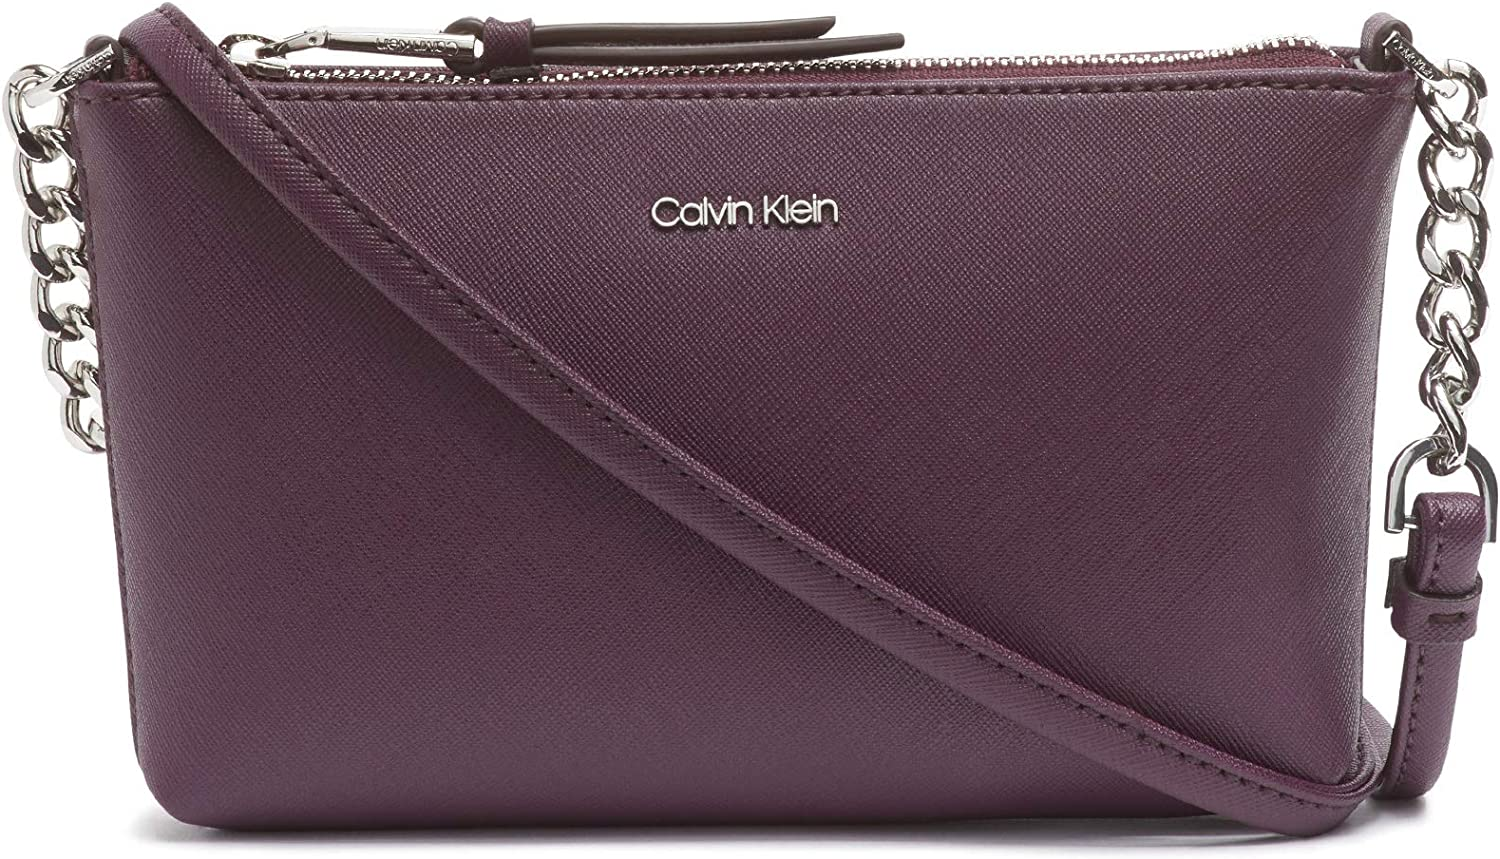 Calvin Klein Hayden Key Item Saffiano Top Zip Chain Crossbody, Eggplant